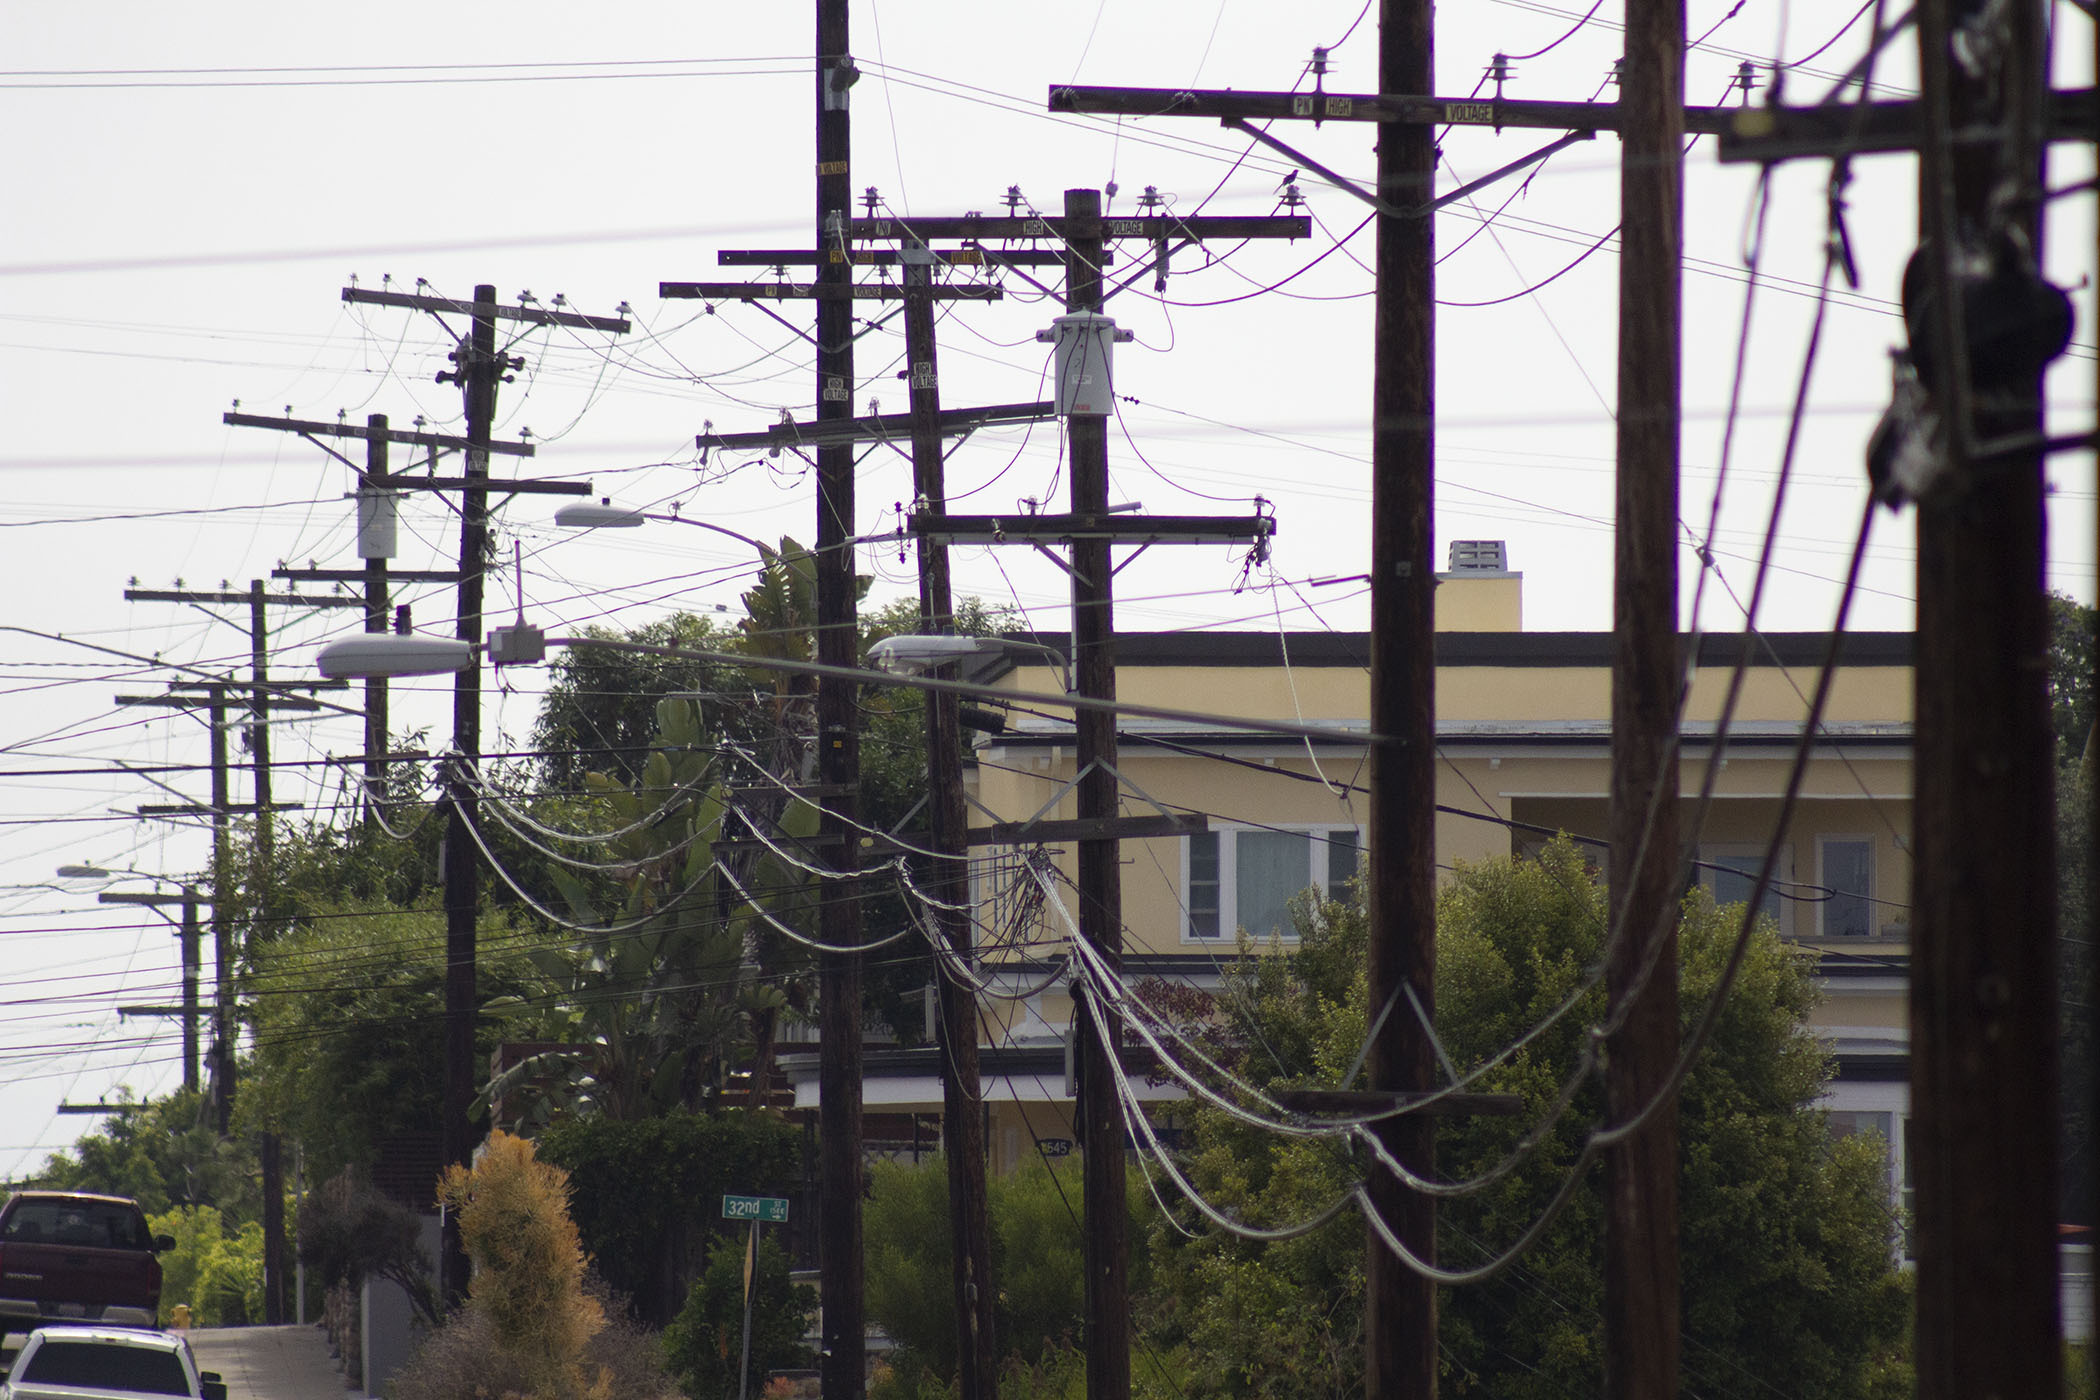 San Diego Community Power Begins Providing Energy To 5 Local Cities